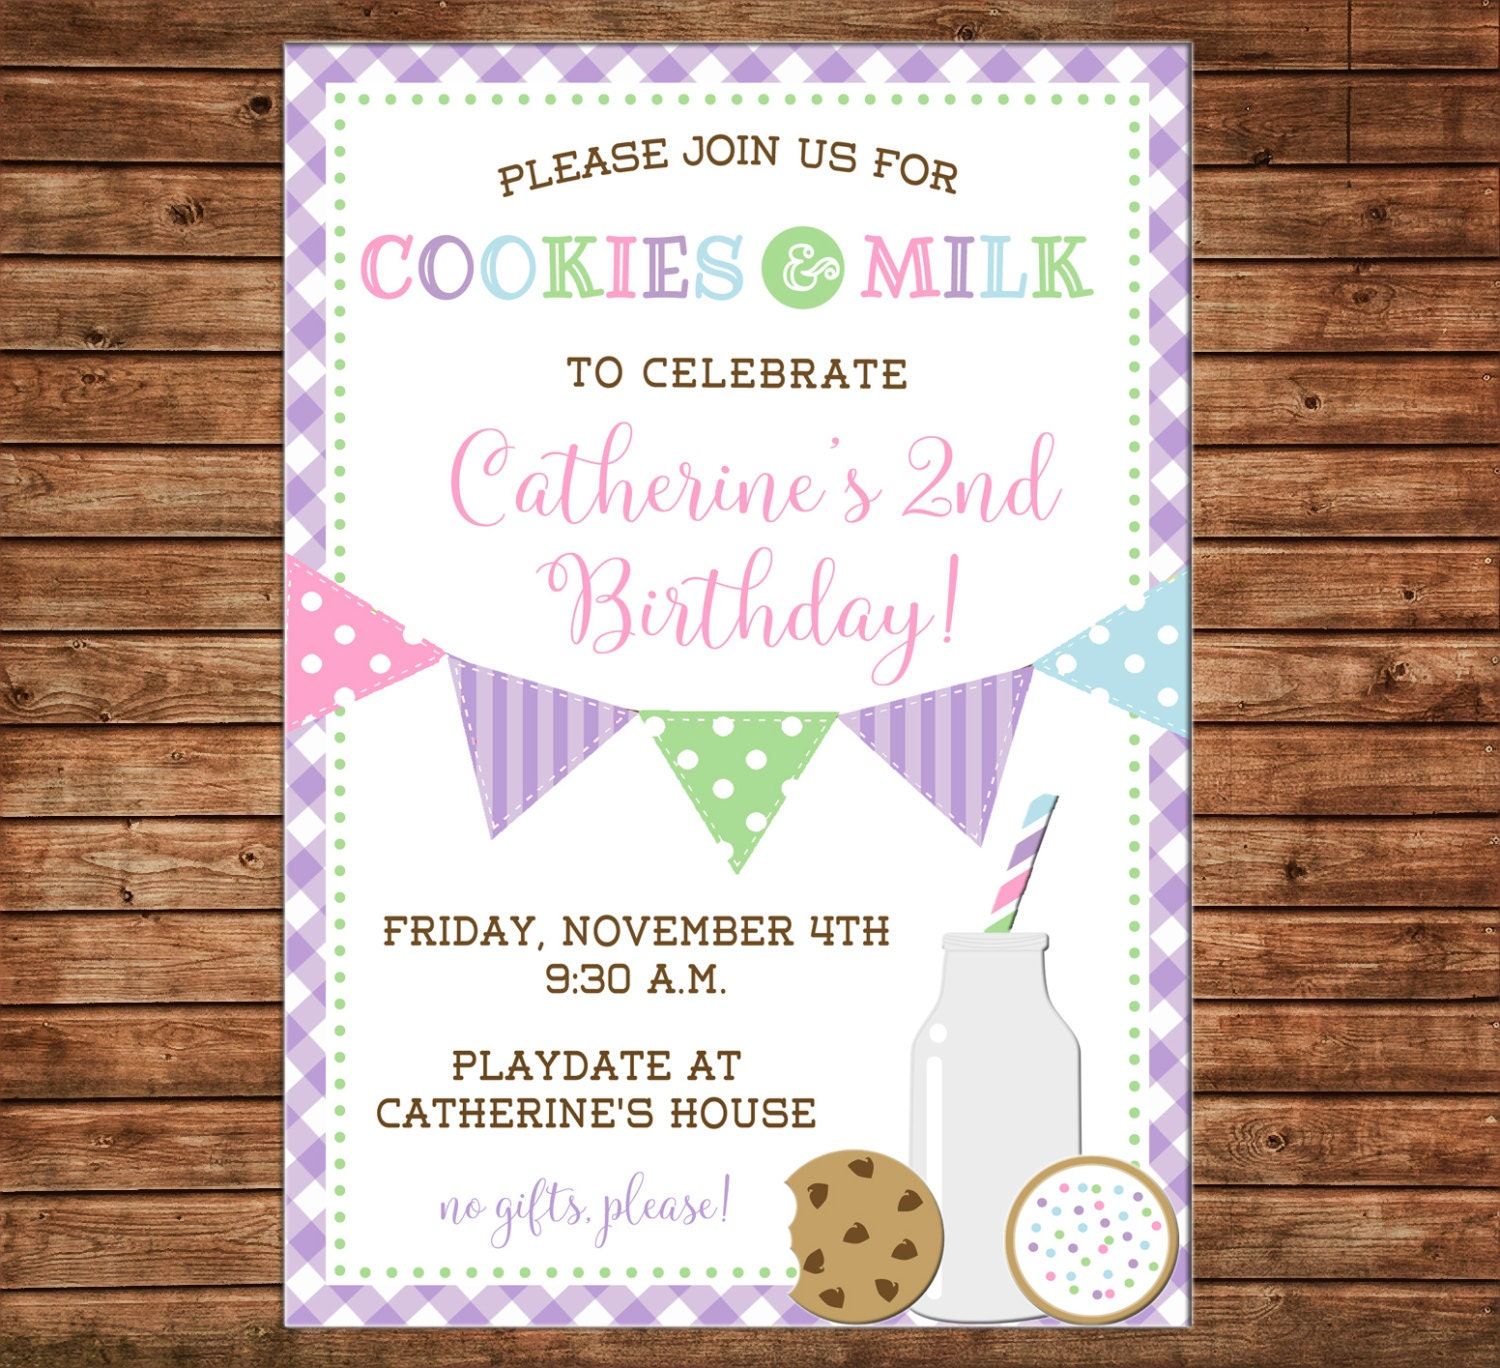 Boy Or Girl Invitation Cookies And Milk Playdate Birthday Party Can